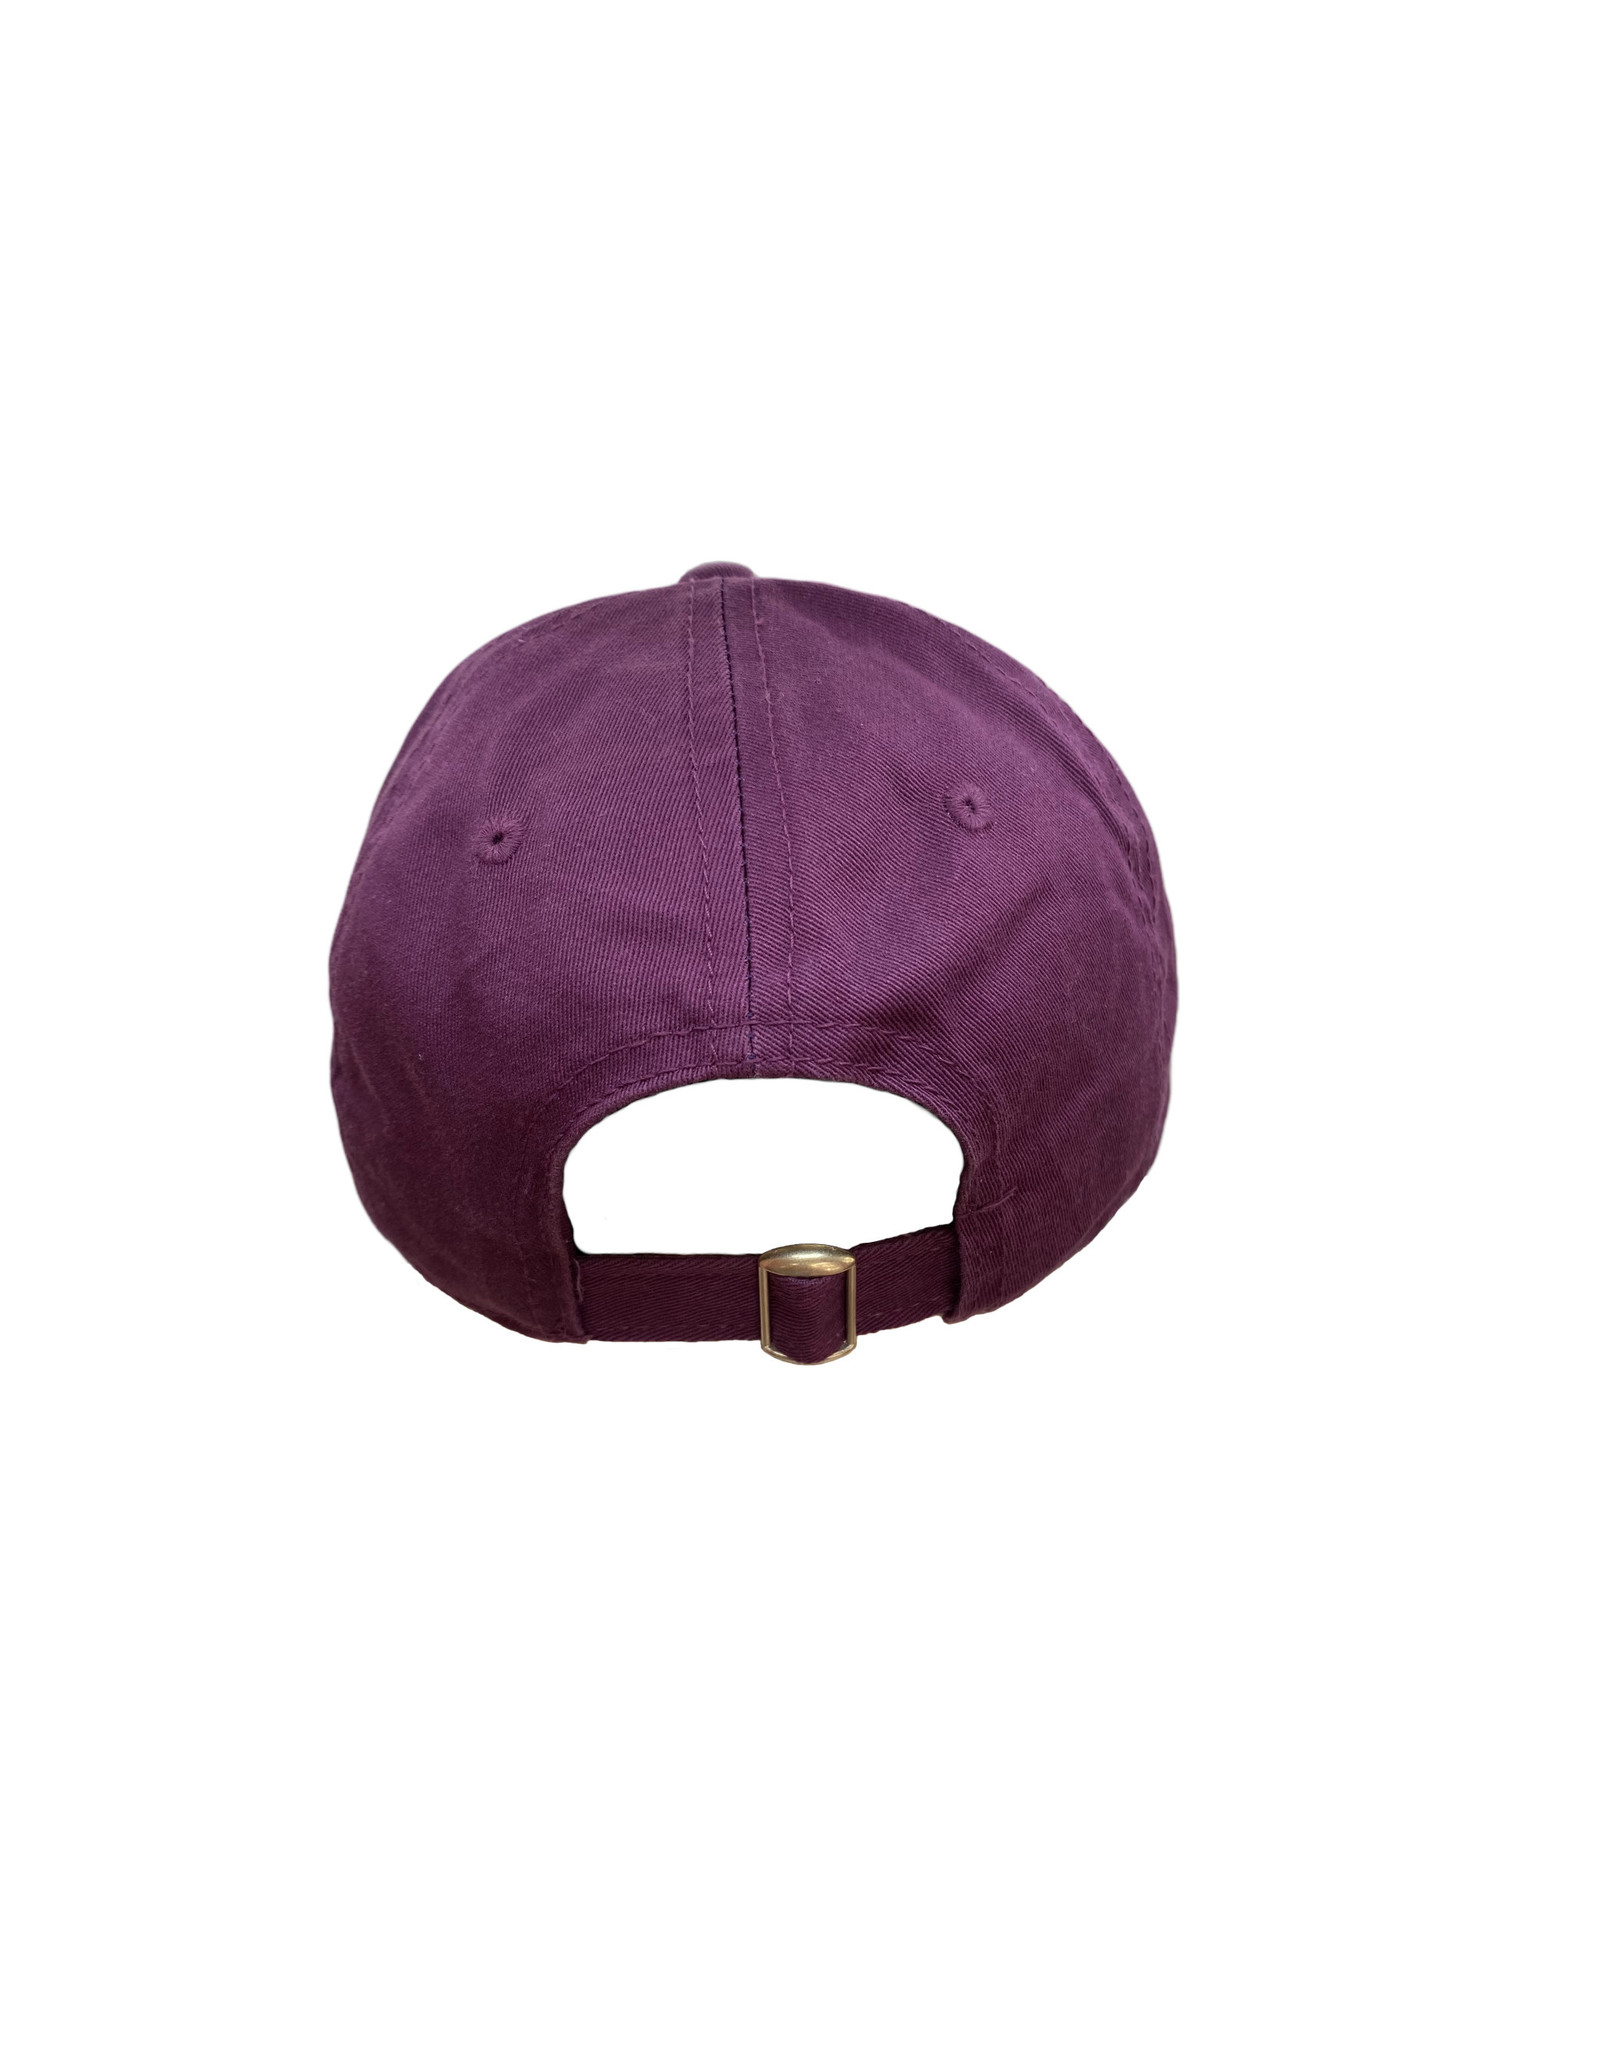 REHOBOTH LIFESTYLE CLASSIC COTTON BEACH HAT ADJUSTABLE OS BERRY 1891